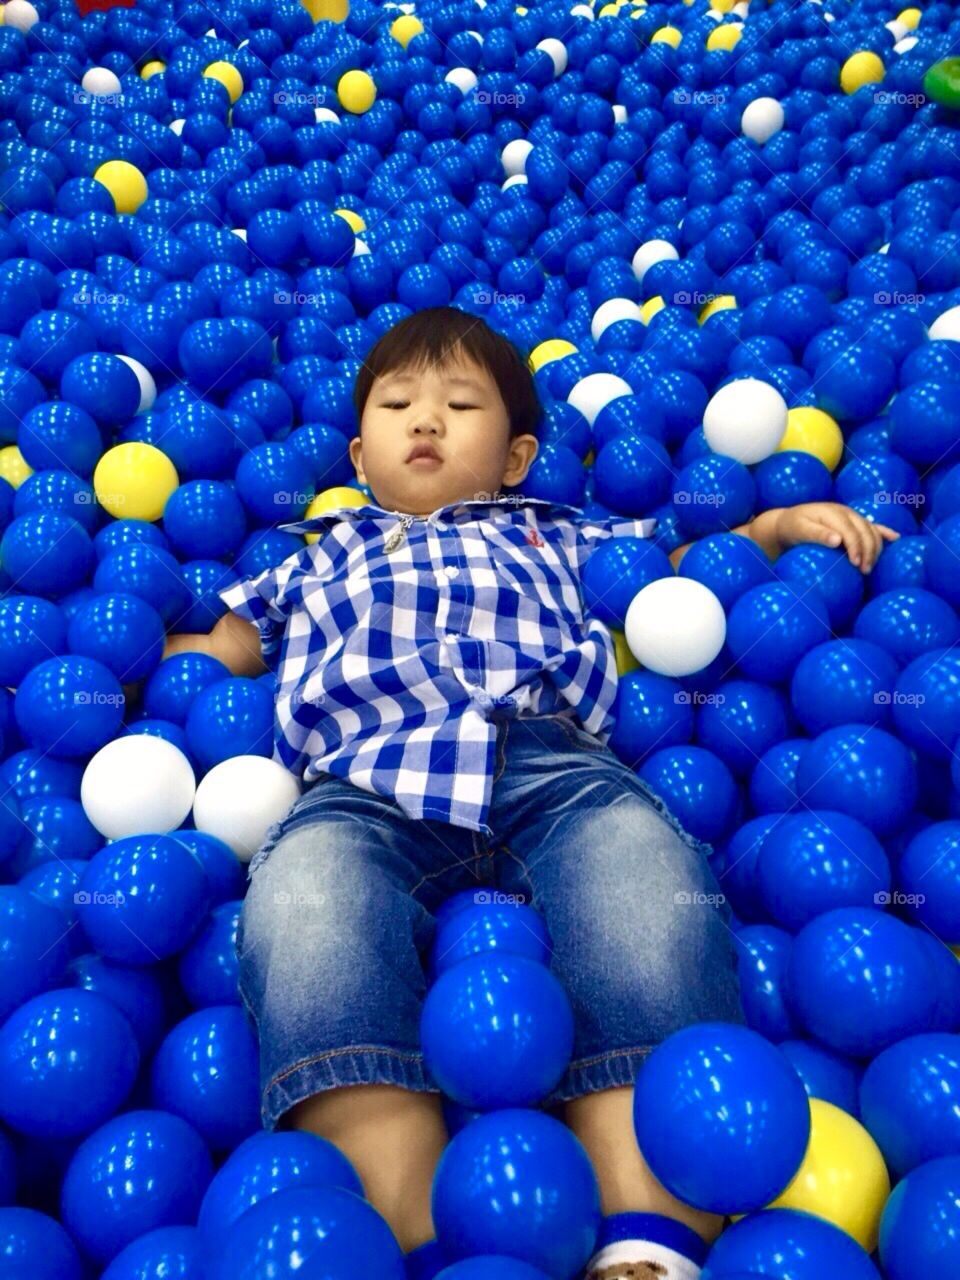 The boy with balls